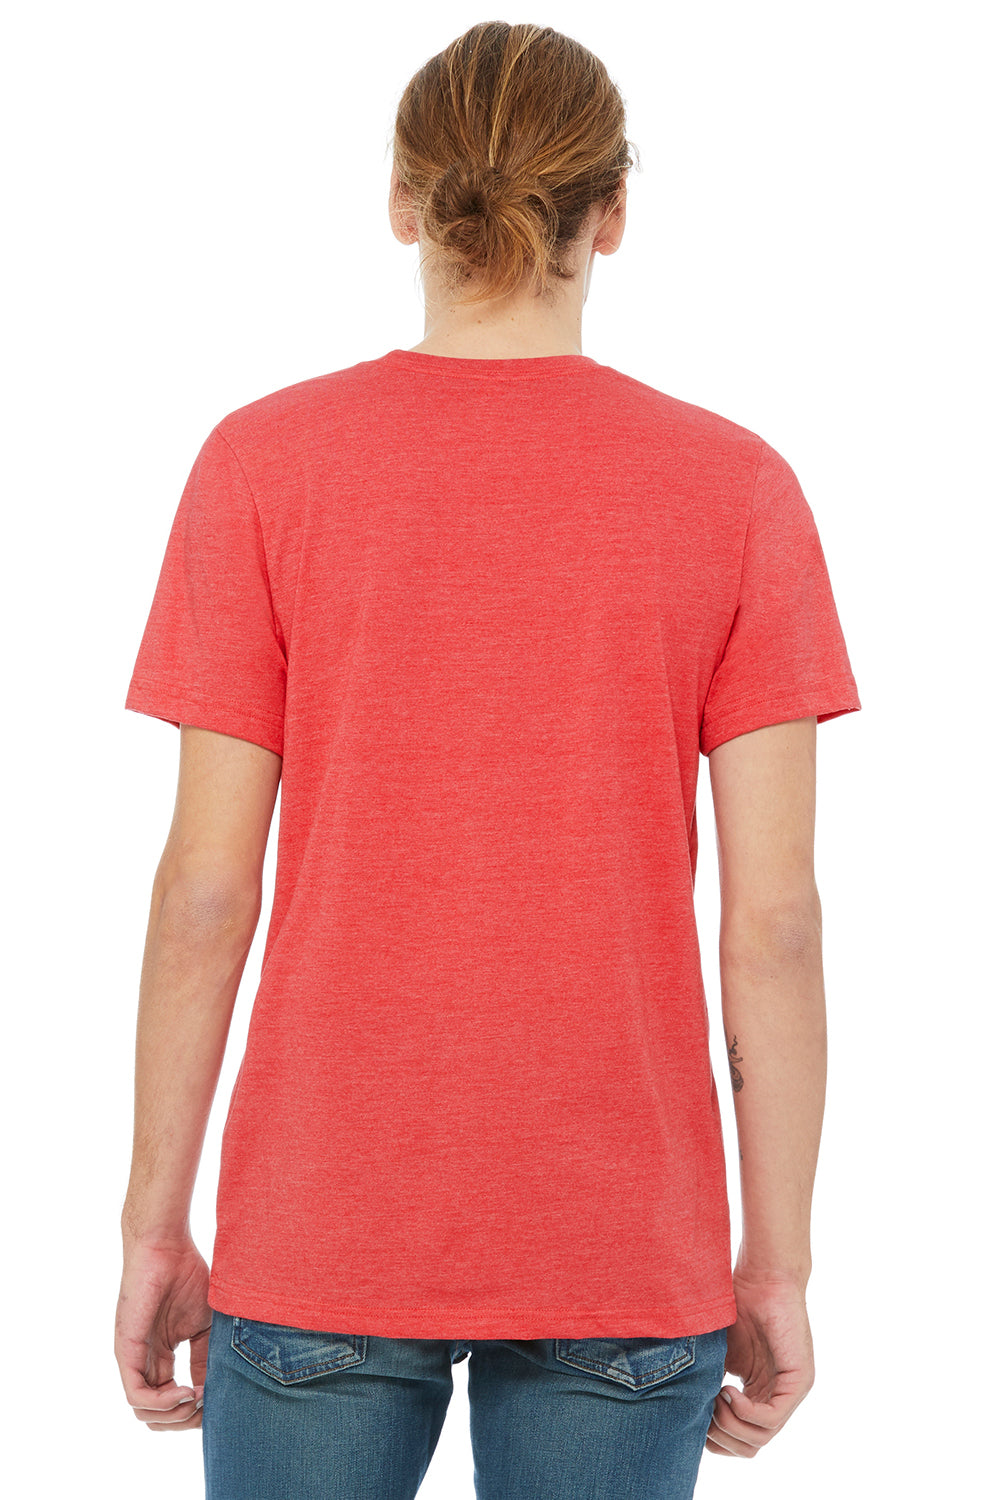 Bella + Canvas 3021 Mens Jersey Short Sleeve Crewneck T-Shirt w/ Pocket Heather Red/Heather Grey Back